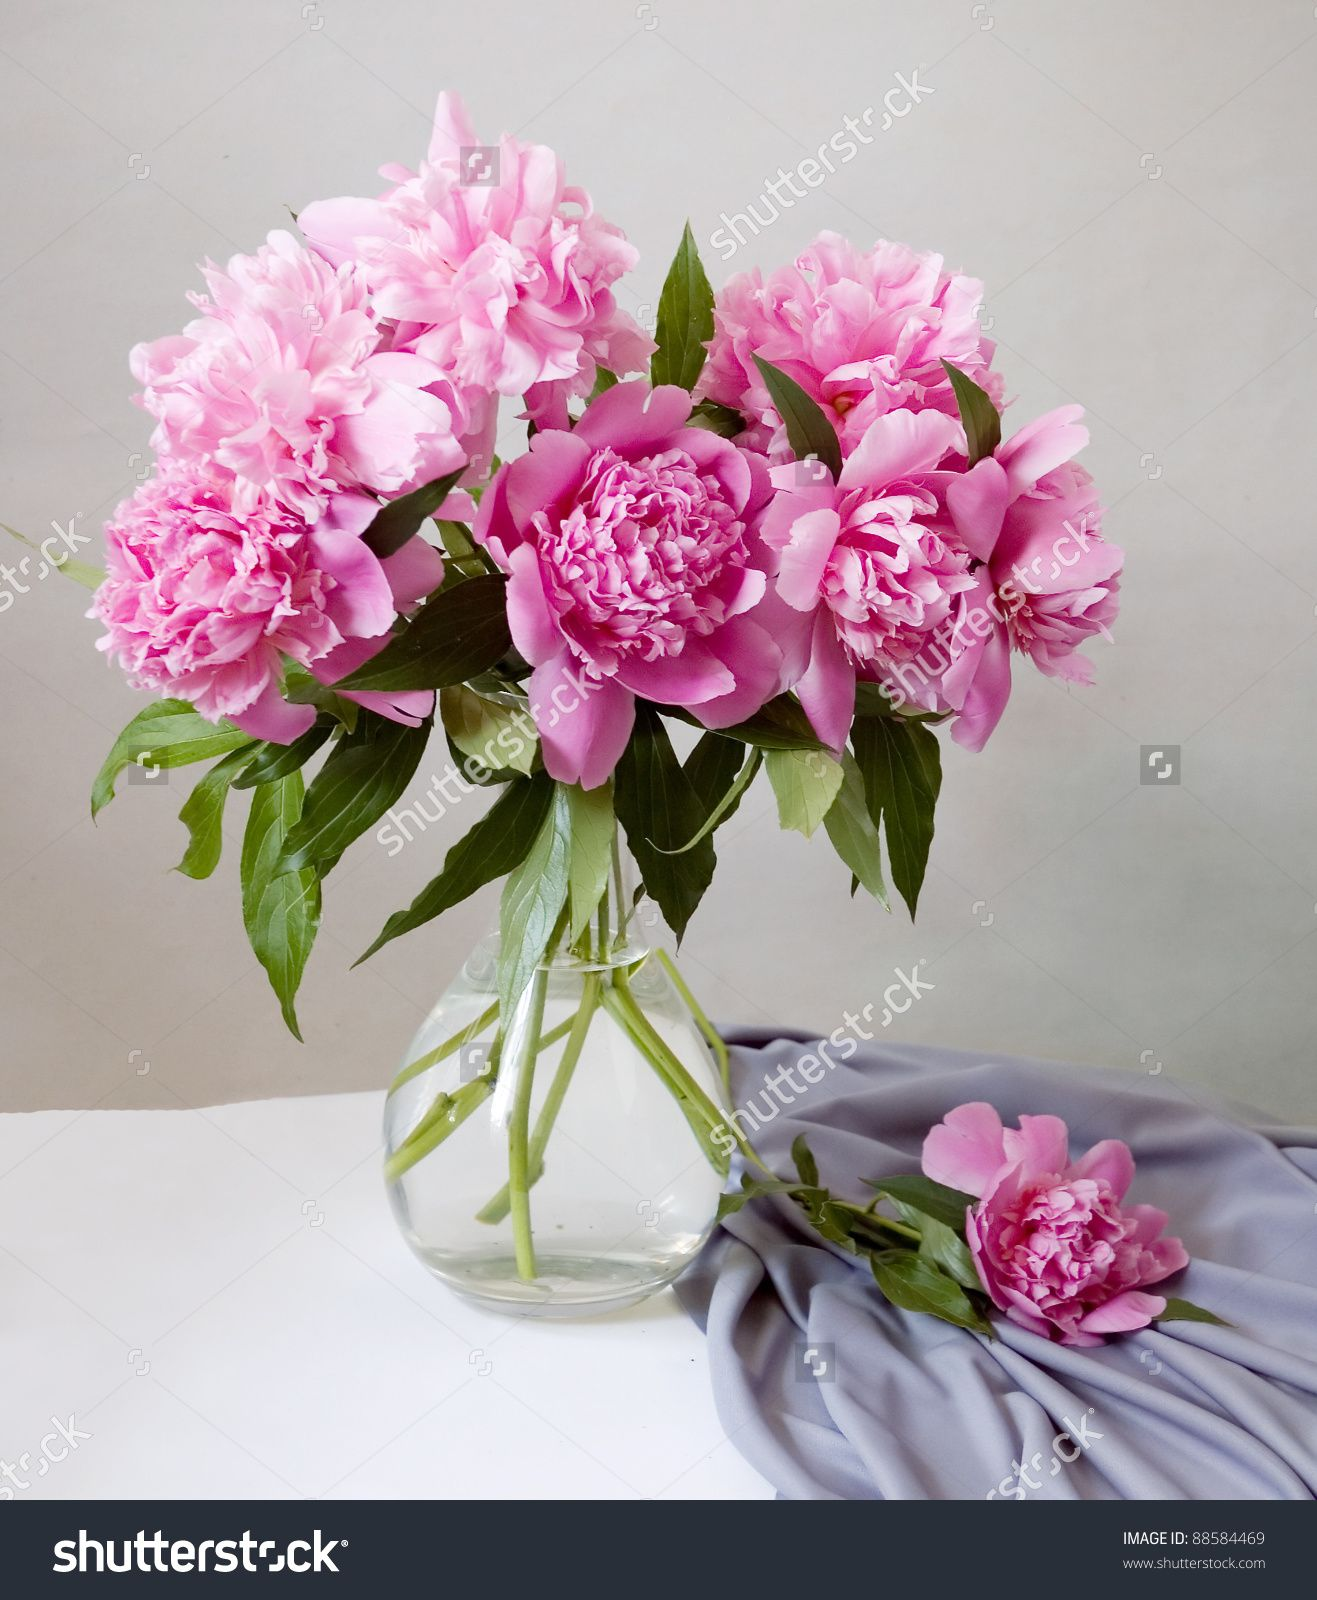 Pin by darya bilous on lovely photos pinterest flowers in vase stock images royalty free images vectors reviewsmspy